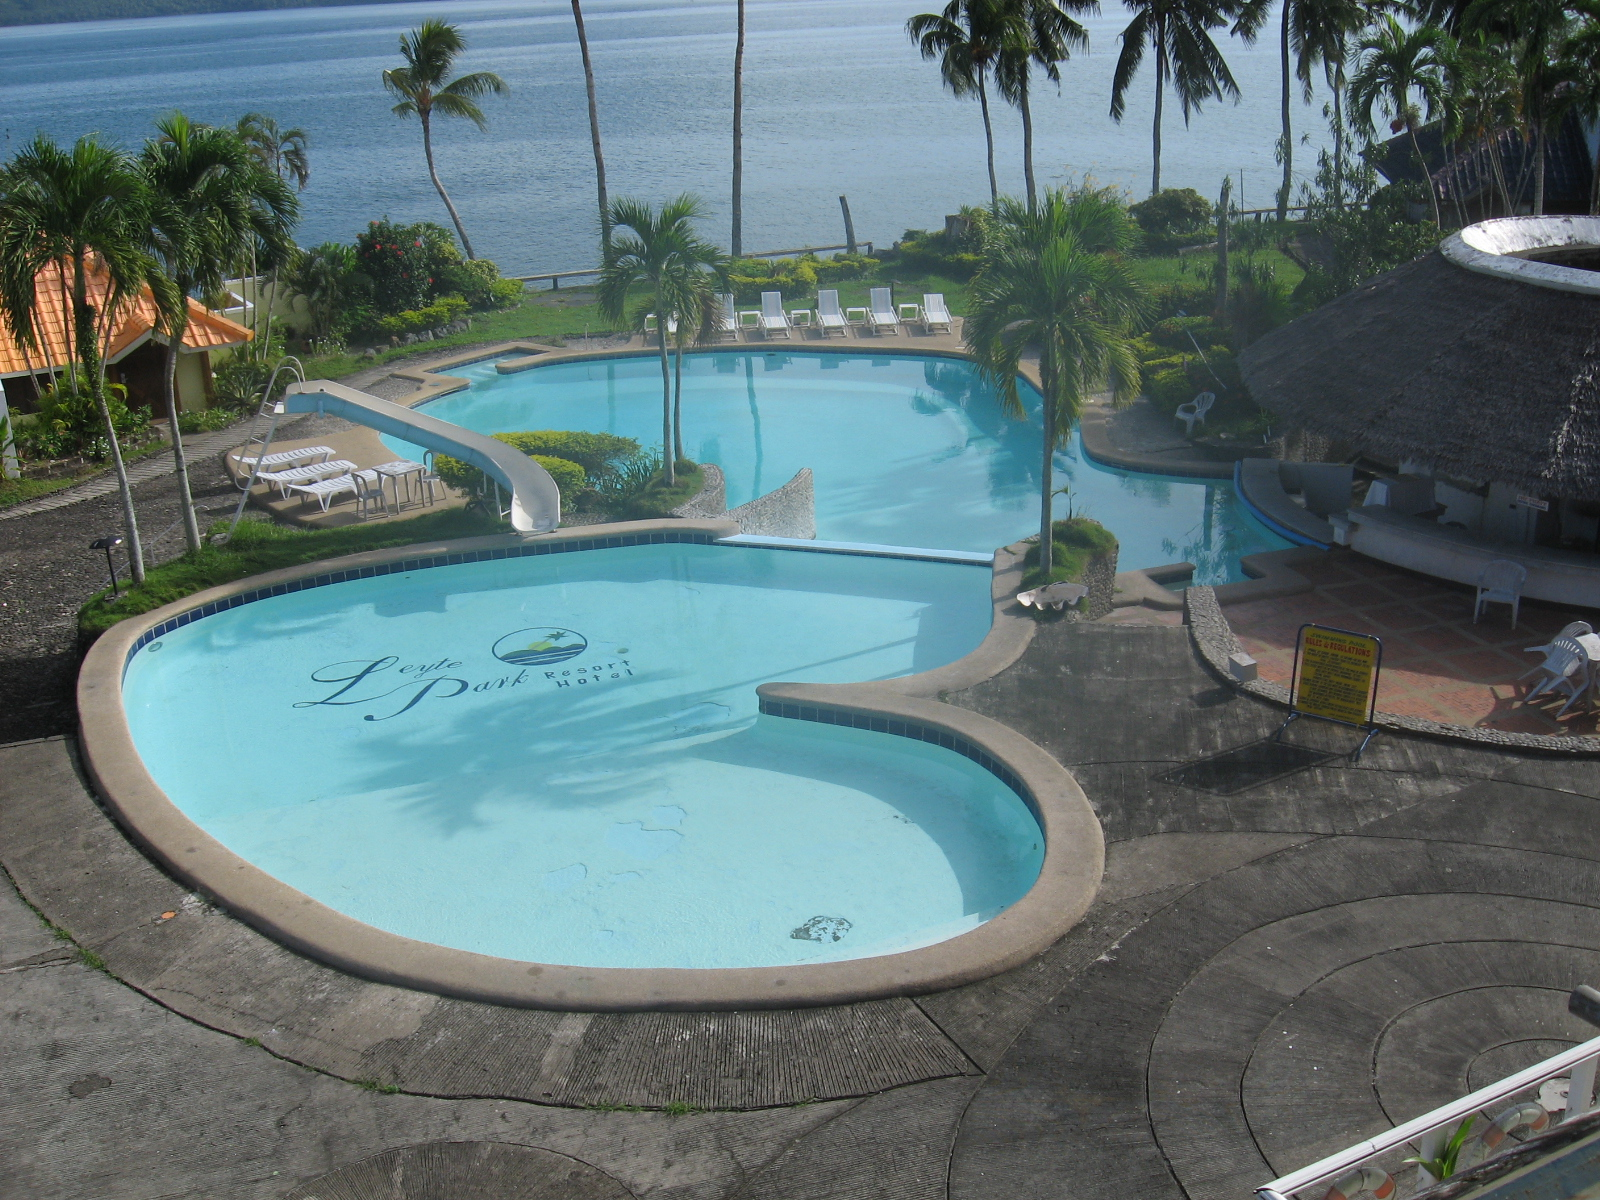 F y i fire your imagination hotel and inn review leyte park resort hotel tacloban city leyte for Stars swimming pool tacloban city